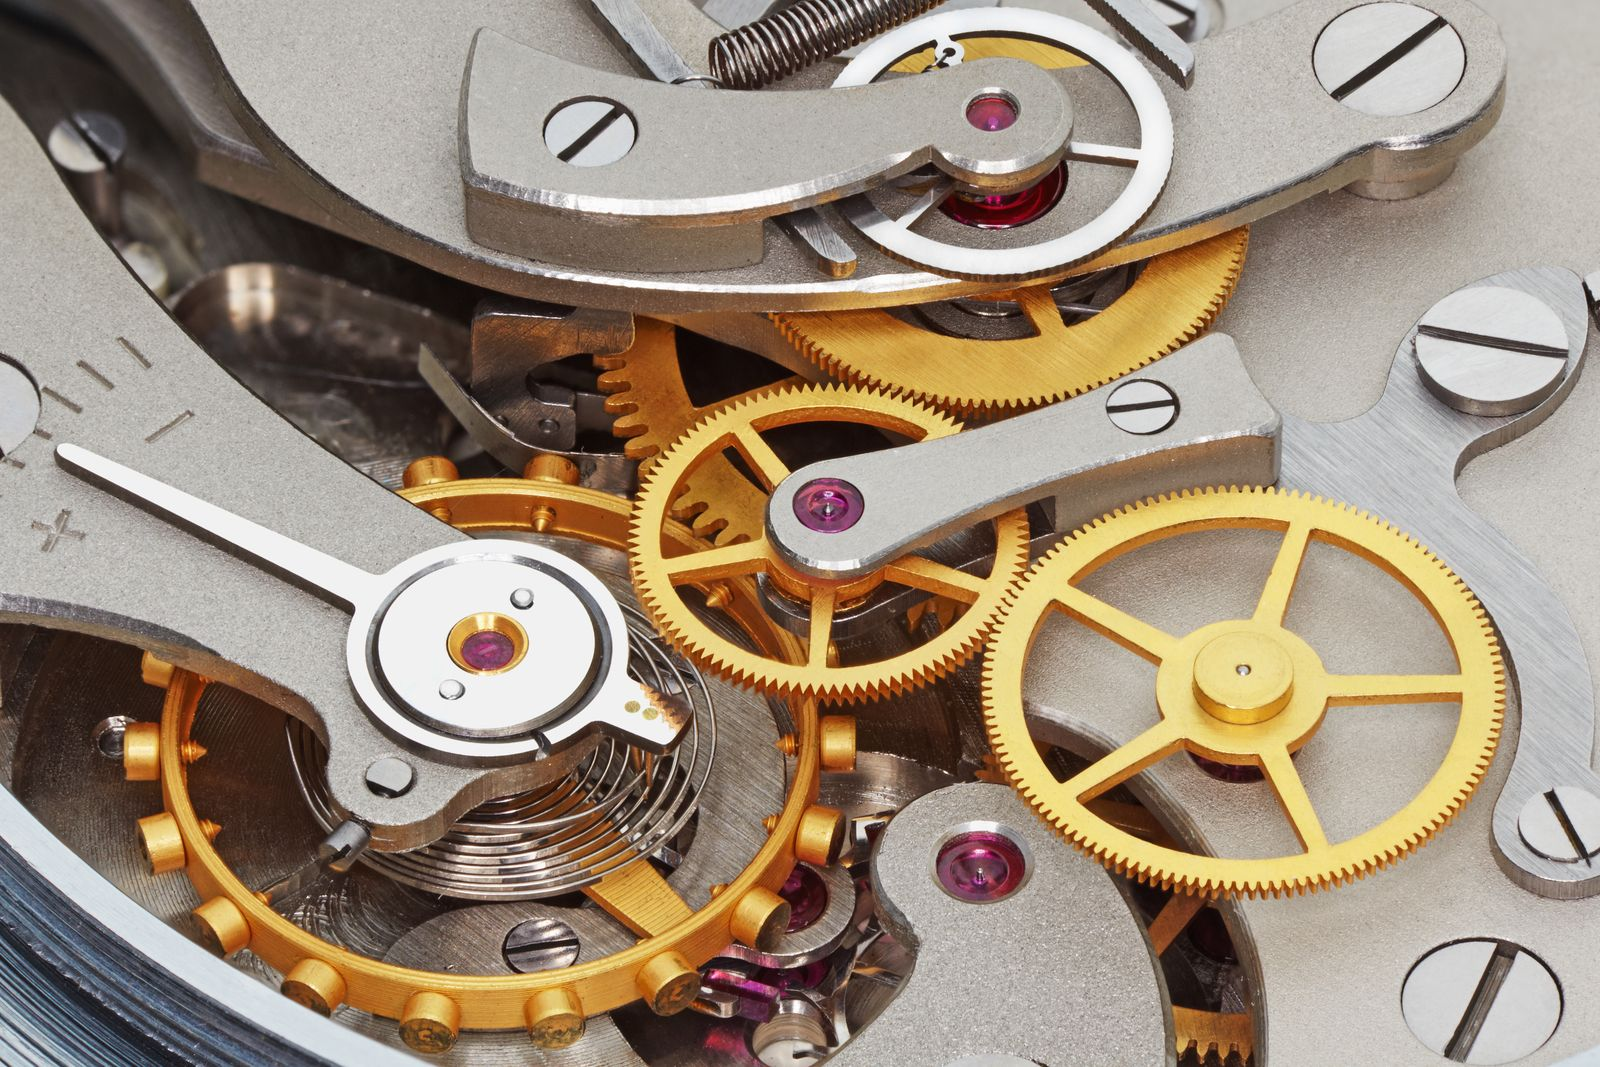 Cleaning Your Watch Or Clock Is A Job For Our Experts